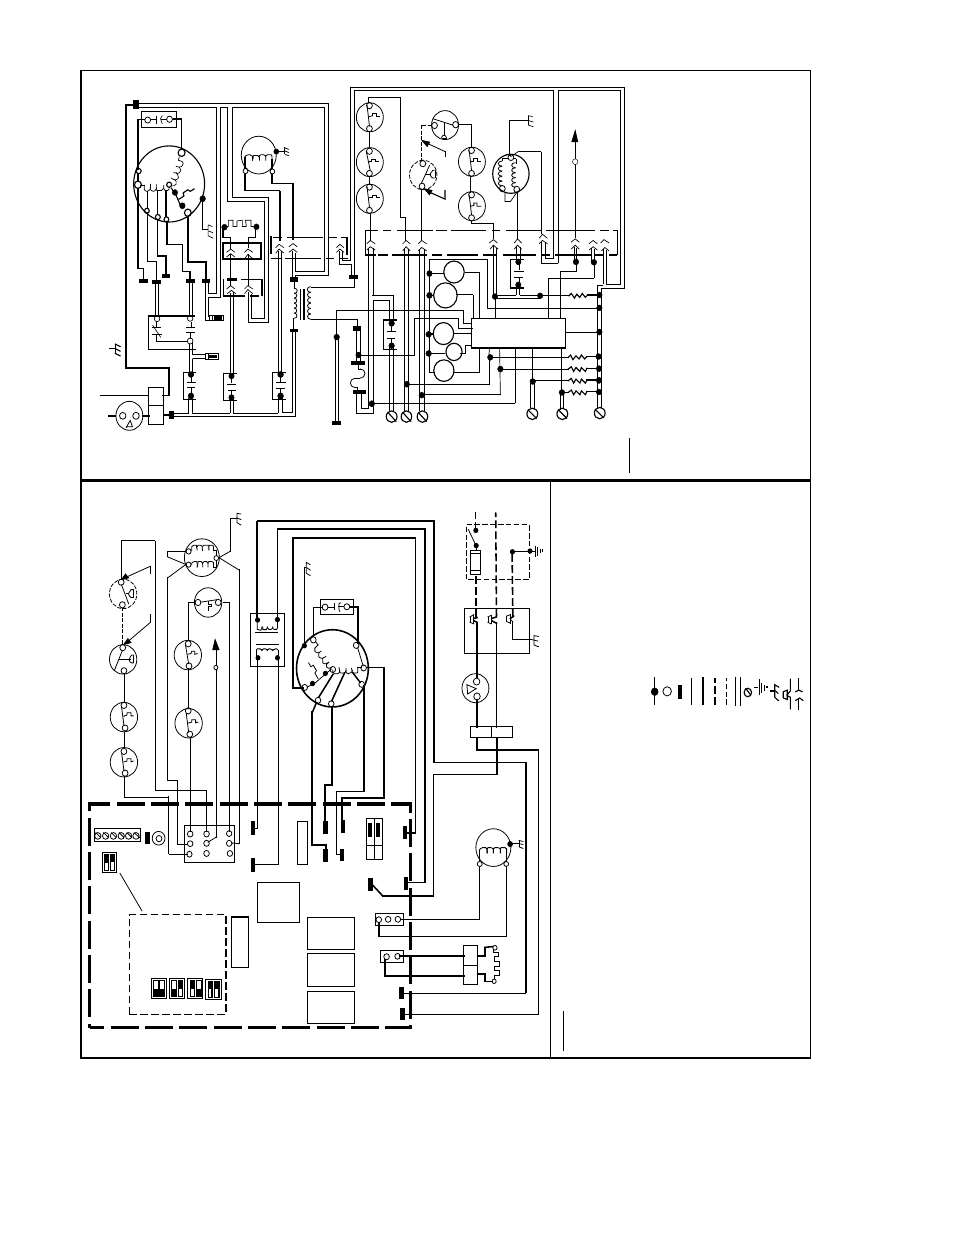 12—unit wiring diagram, hs ir id r b lw r | carrier